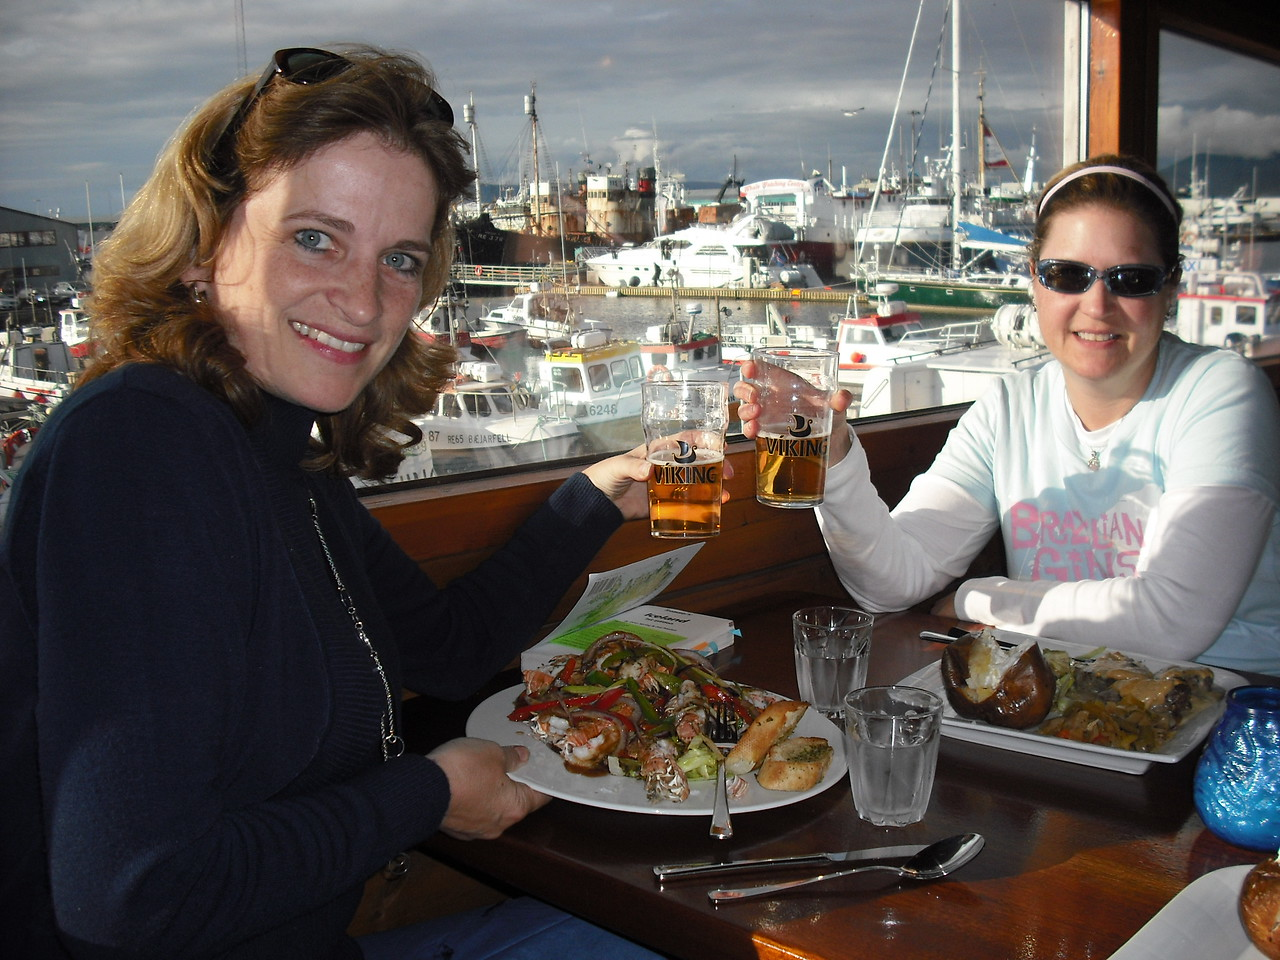 What a disappointment!  The Attache ordered lobseter and got shrimp.  She was pissed!  Hey, that's Jenni there on the right!  Great trip, Jenni!